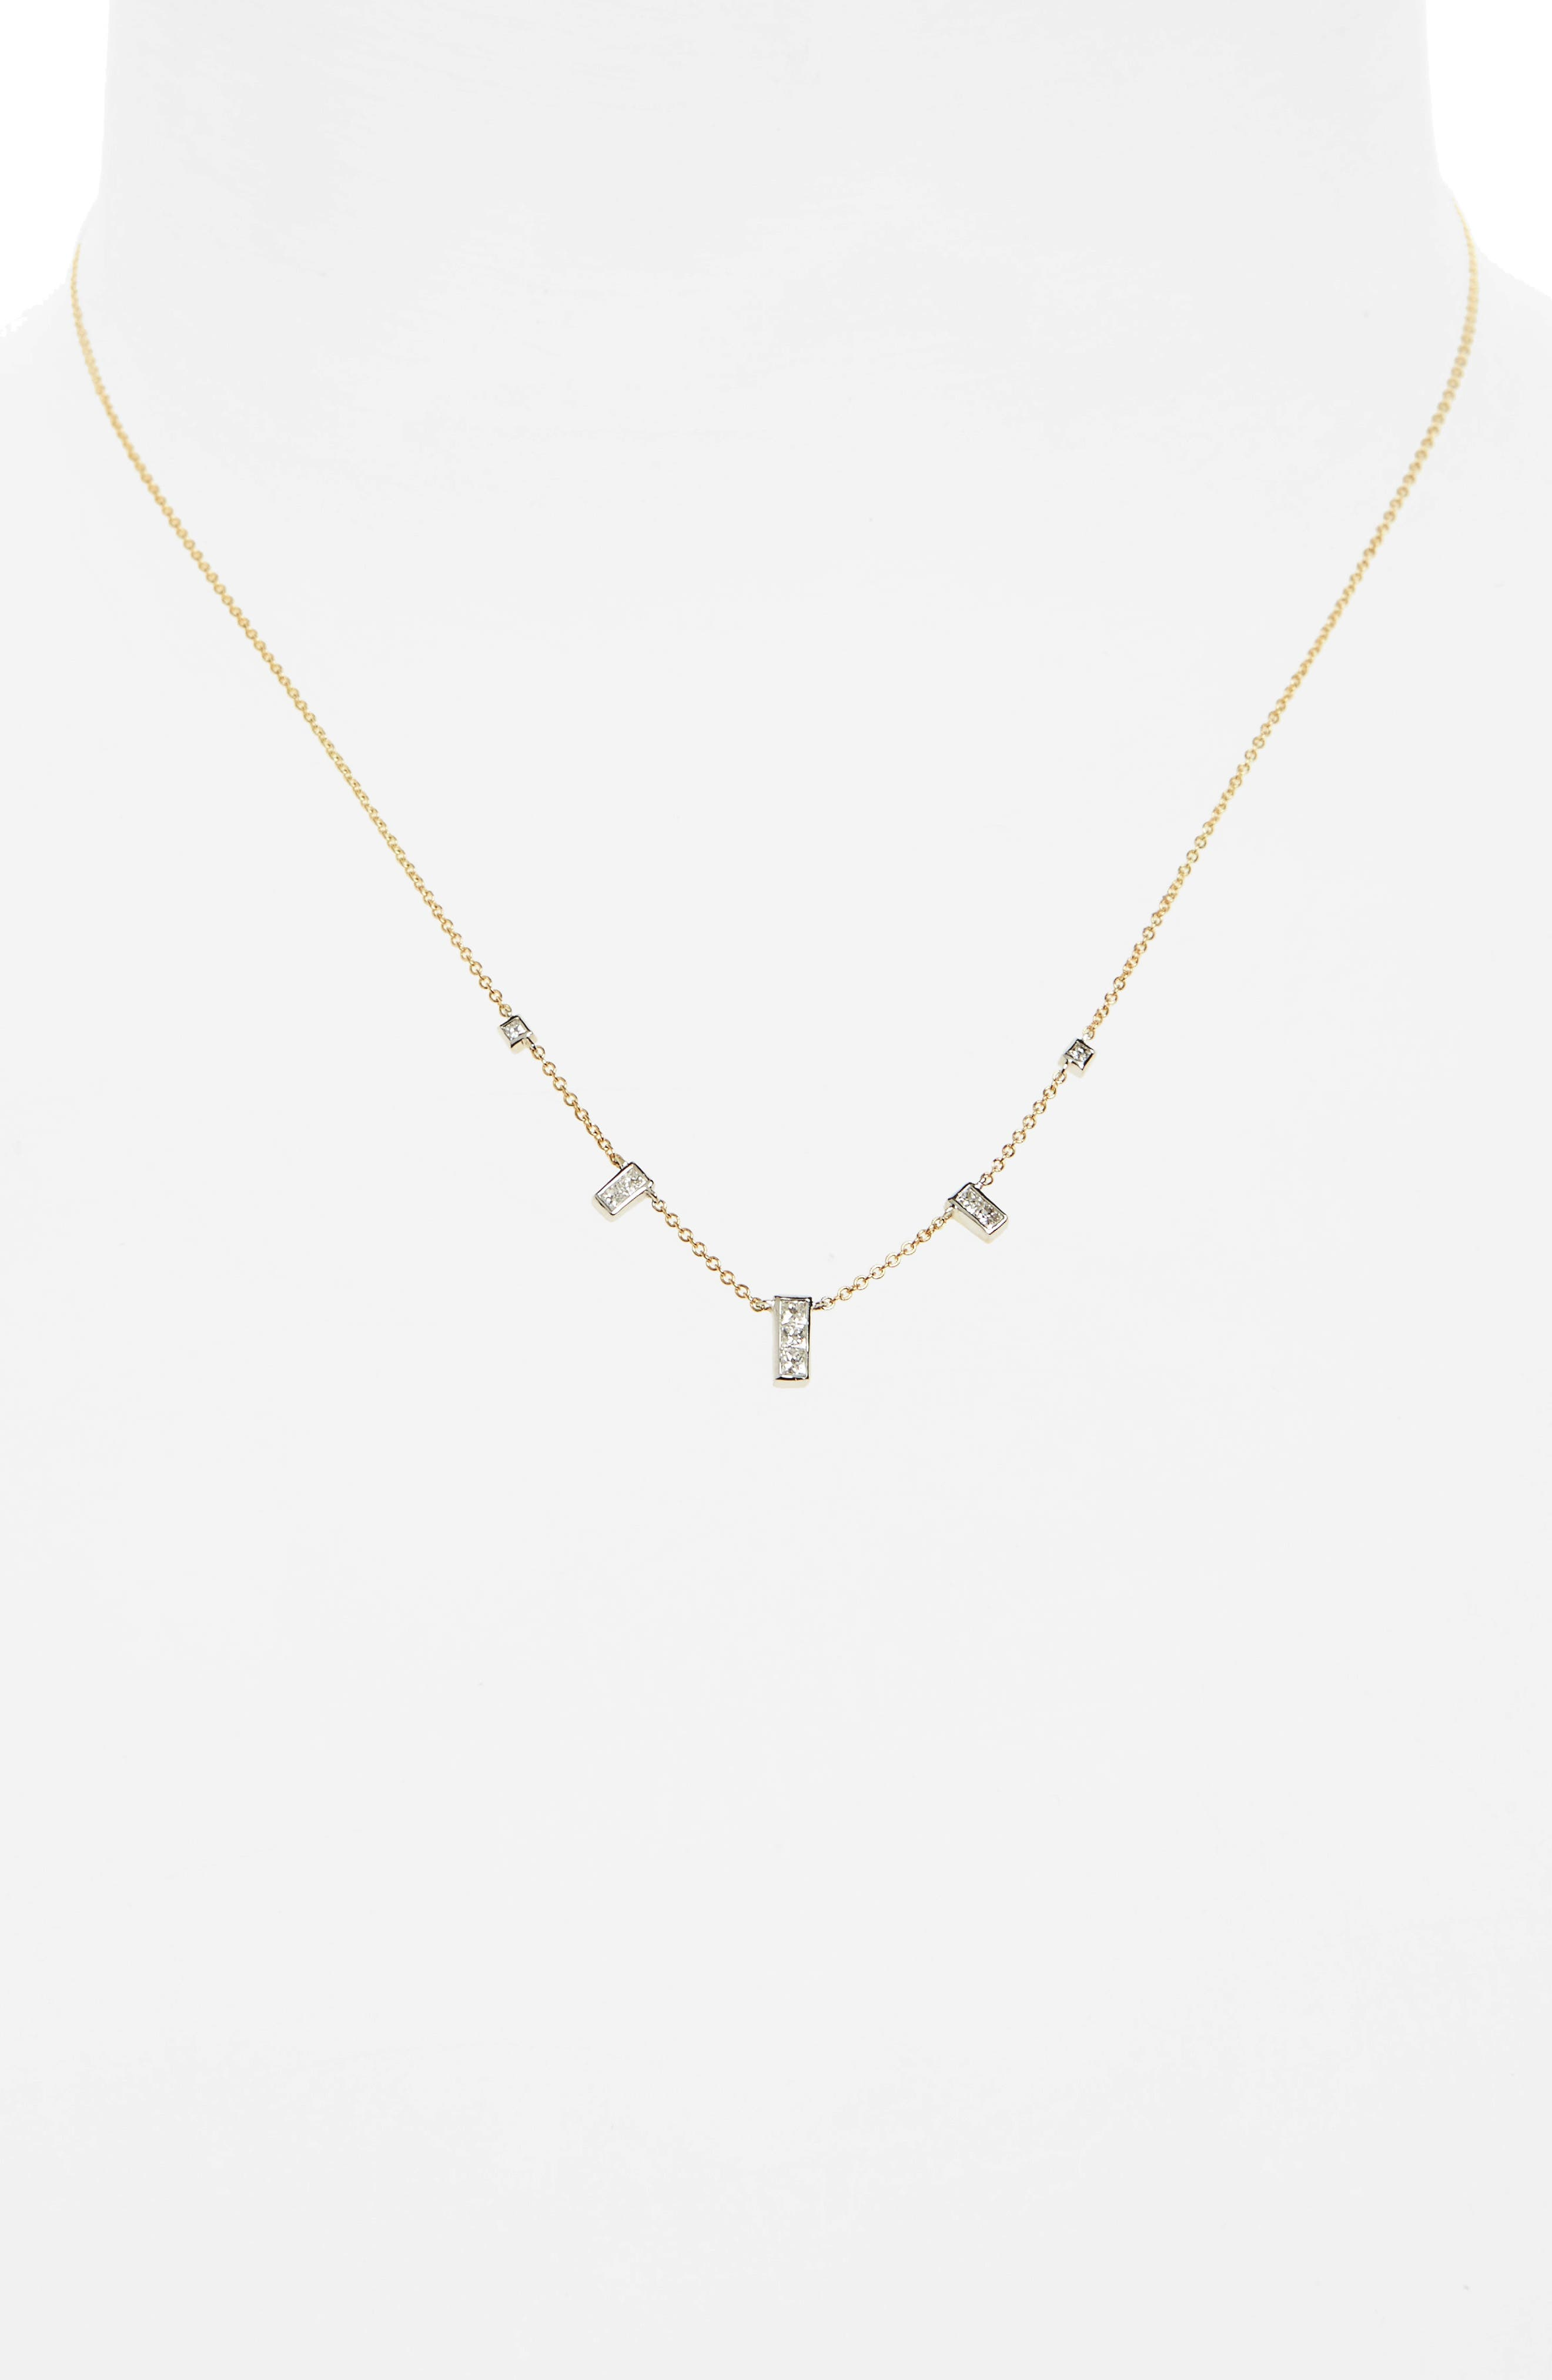 Diamond Rectangle Dangle Station Necklace,                             Alternate thumbnail 2, color,                             Yellow Gold/ White Gold